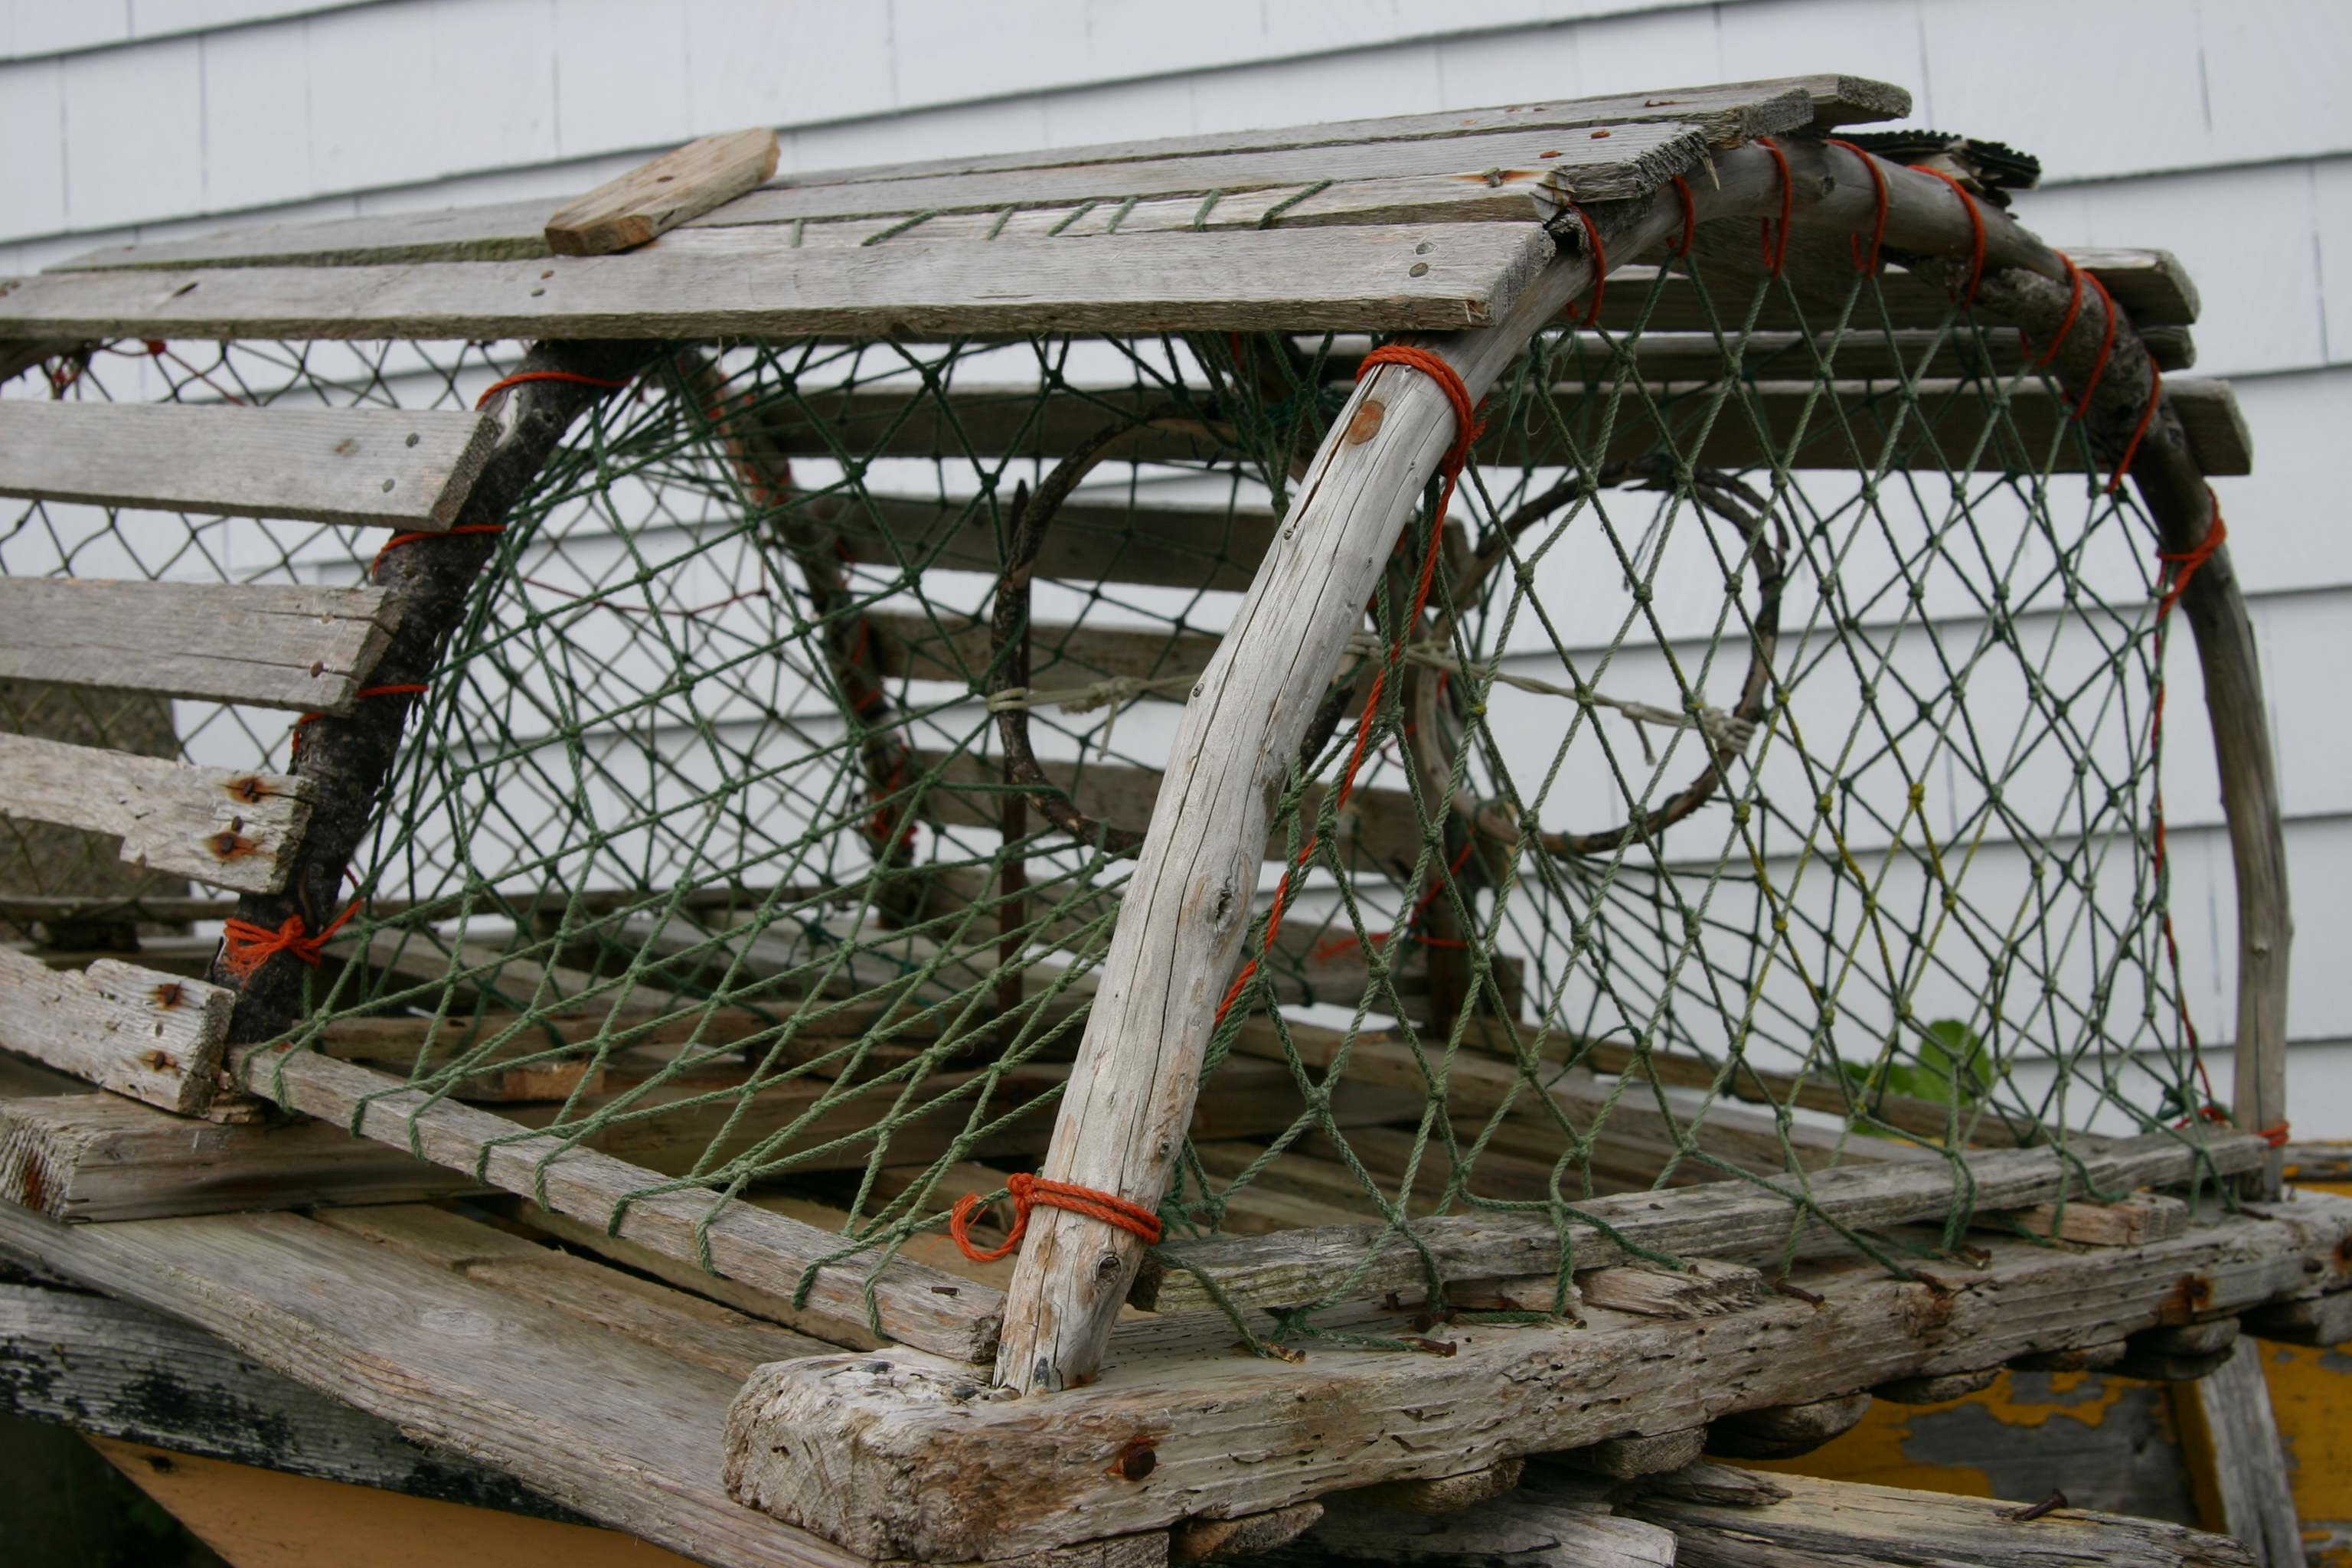 File:Lobster trap.jpg - Wikipedia, the free encyclopedia